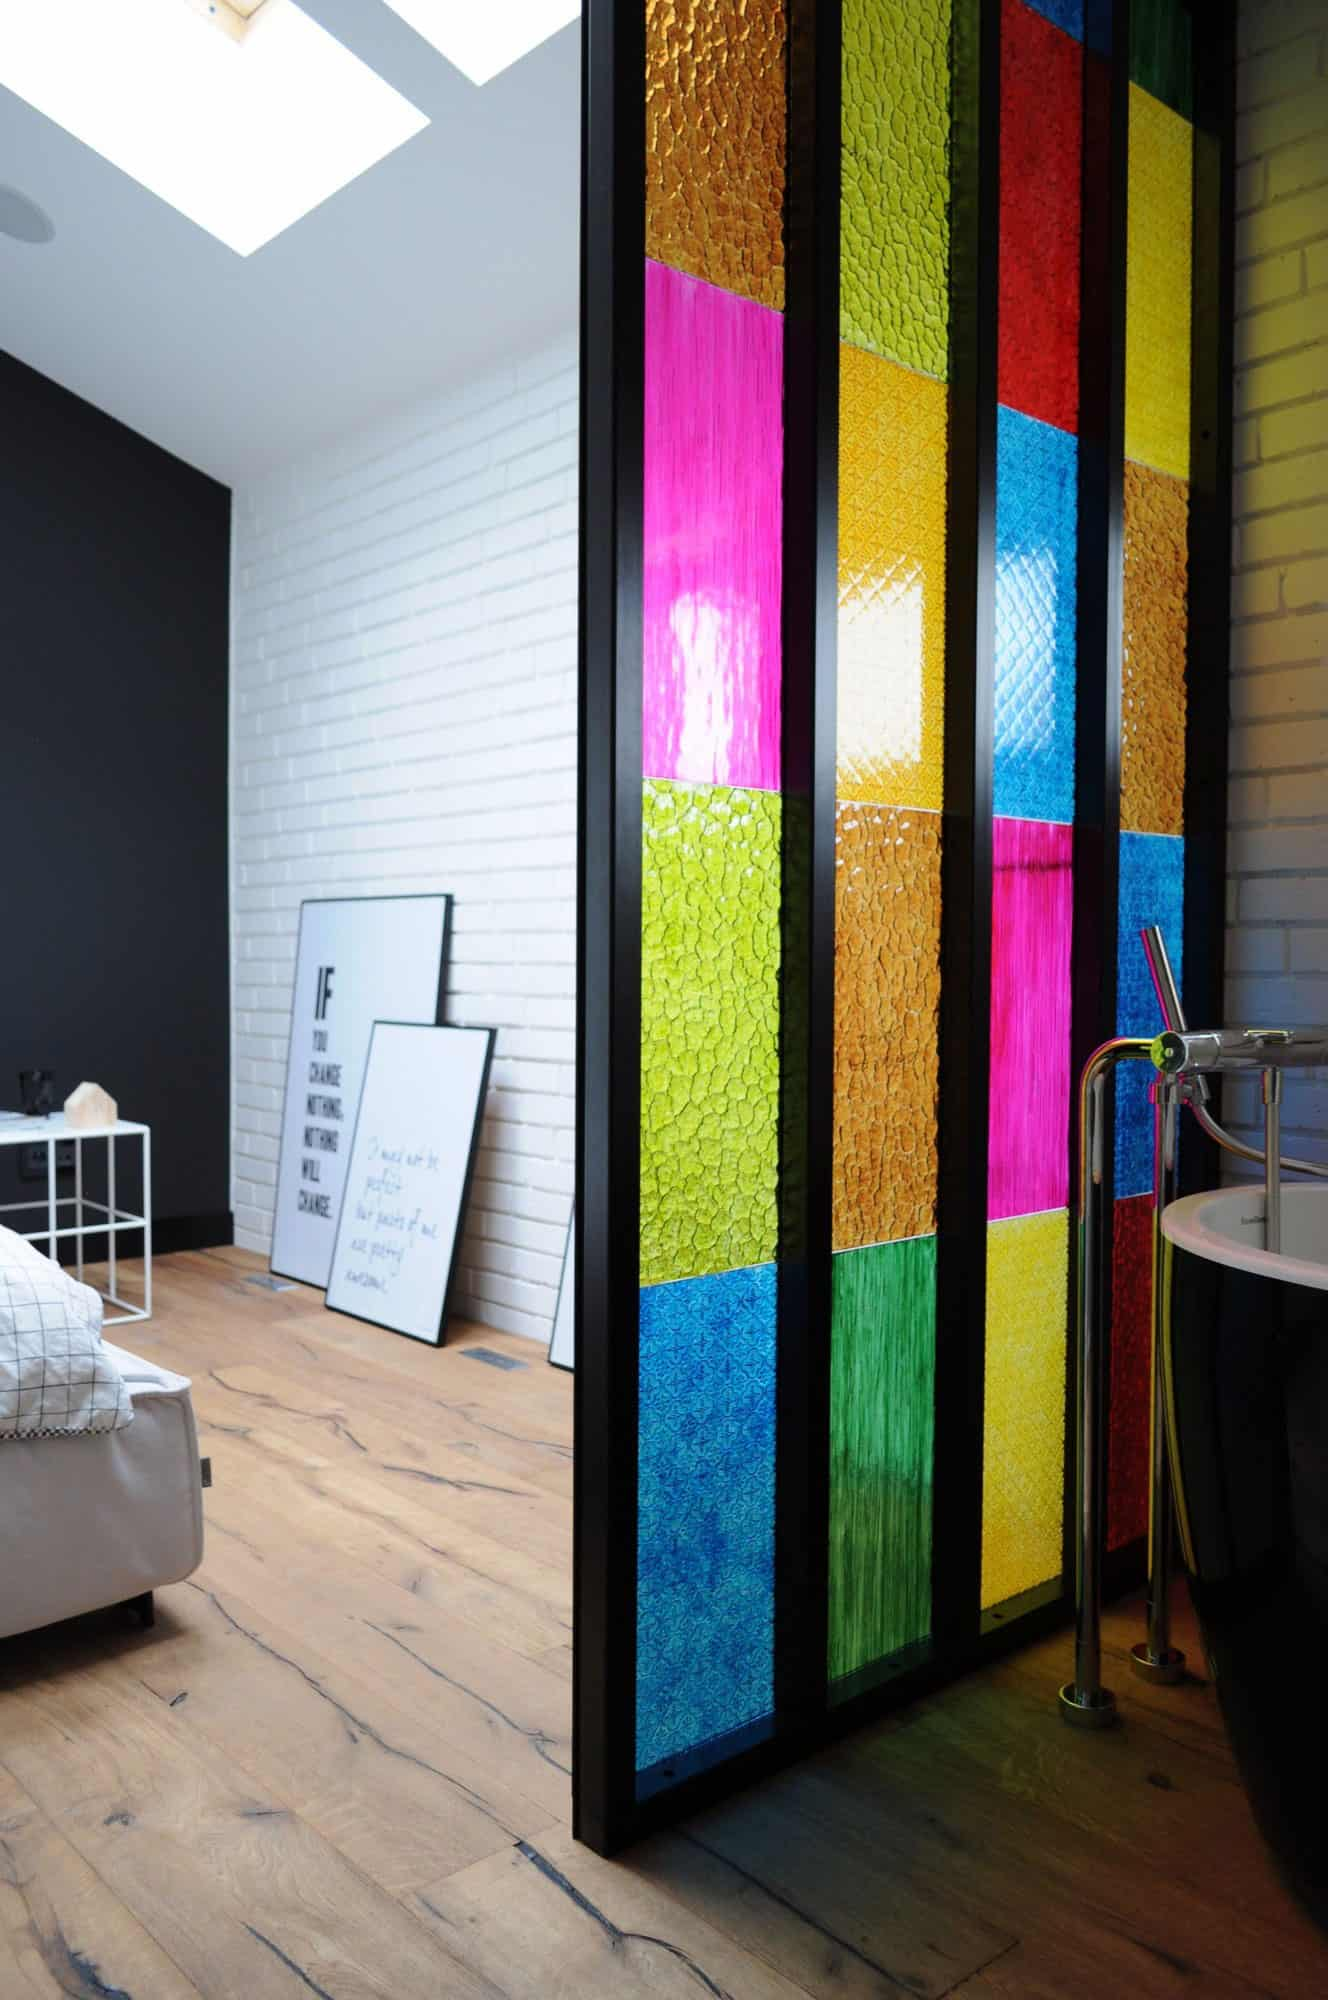 Brilliant Bedroom Bathroom Partition In Colored Plastic Panels Diy Idea Download Free Architecture Designs Intelgarnamadebymaigaardcom